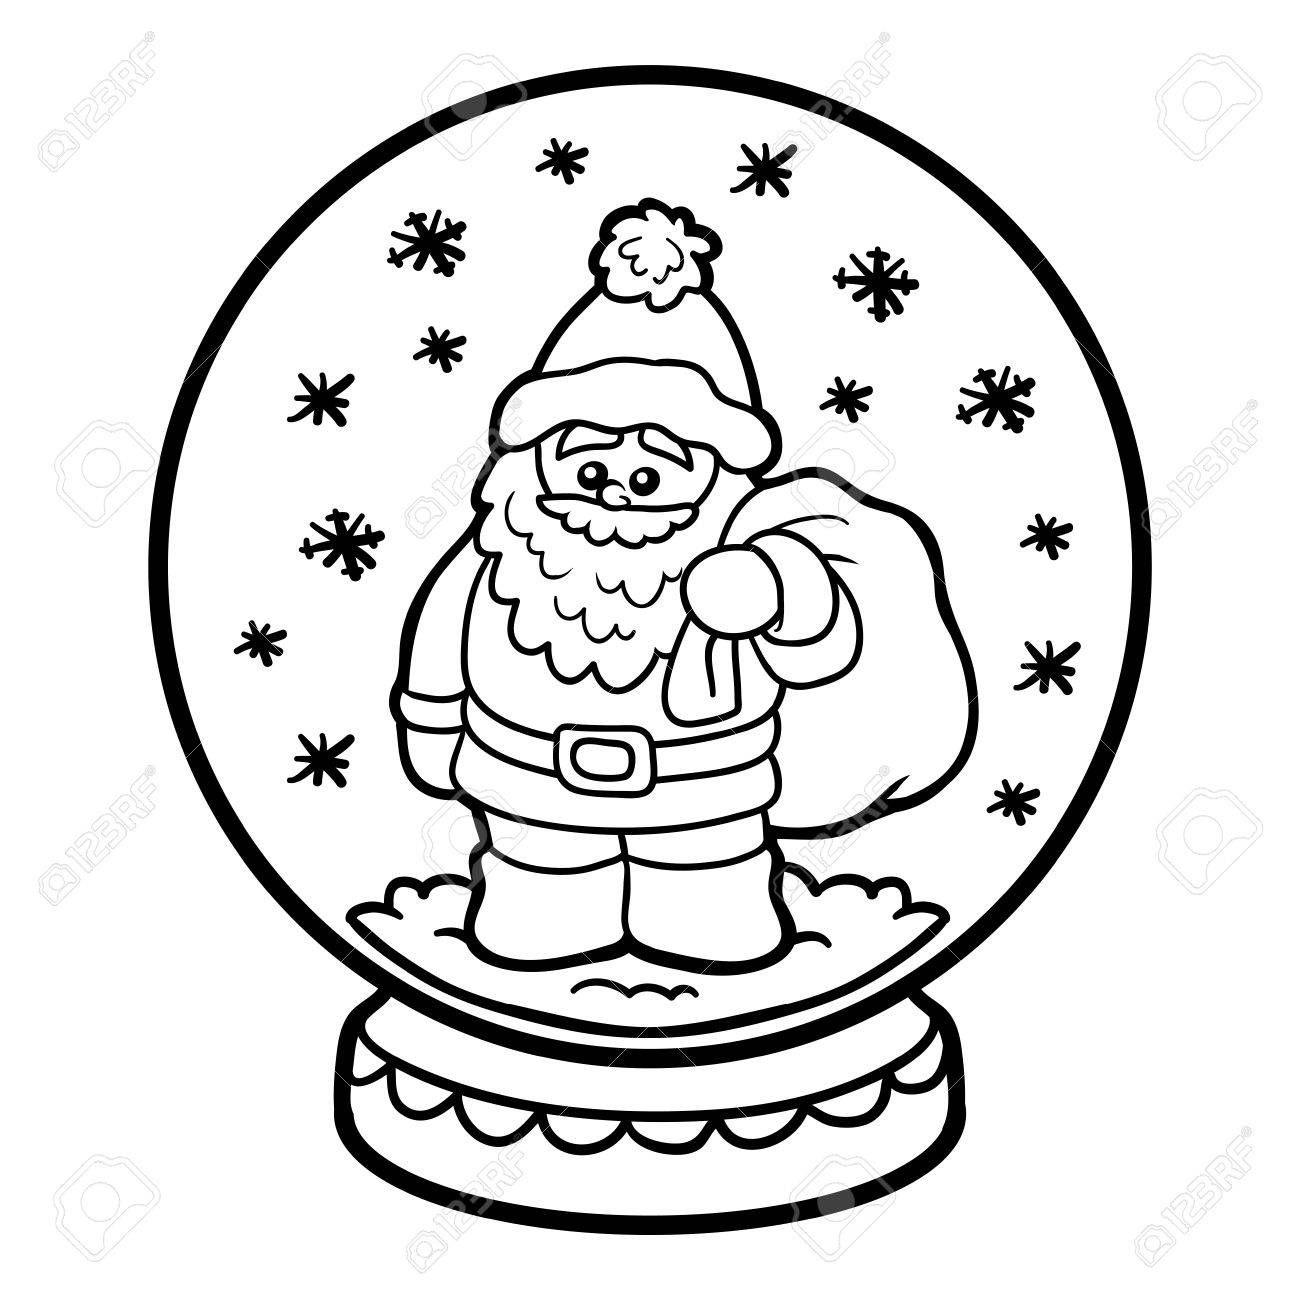 coloring book for children winter snowball with santa claus stock vector 66575151